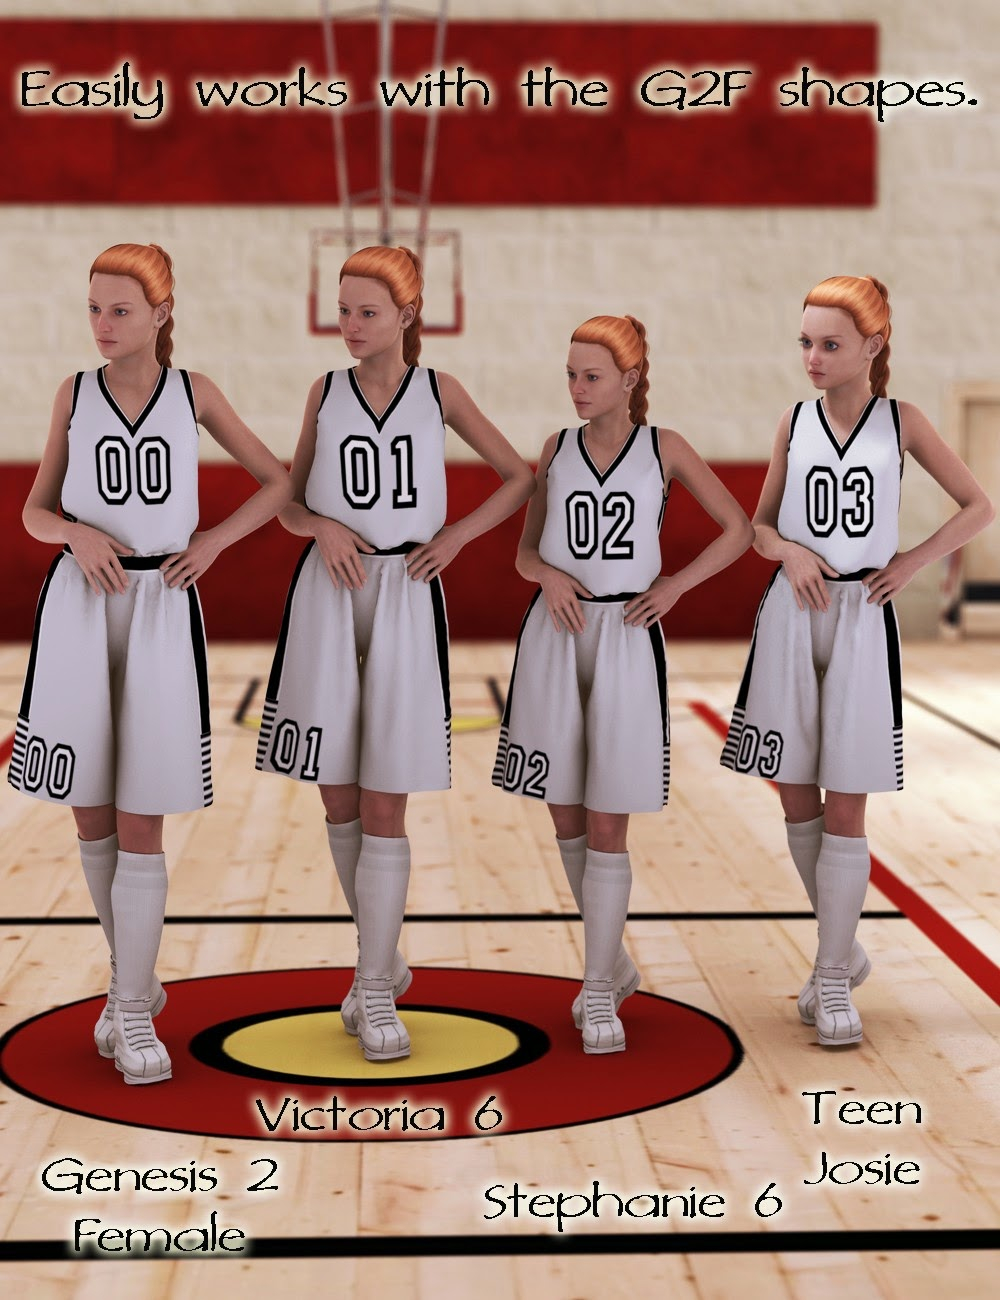 Athletics: Basketball for Genesis 2 Female